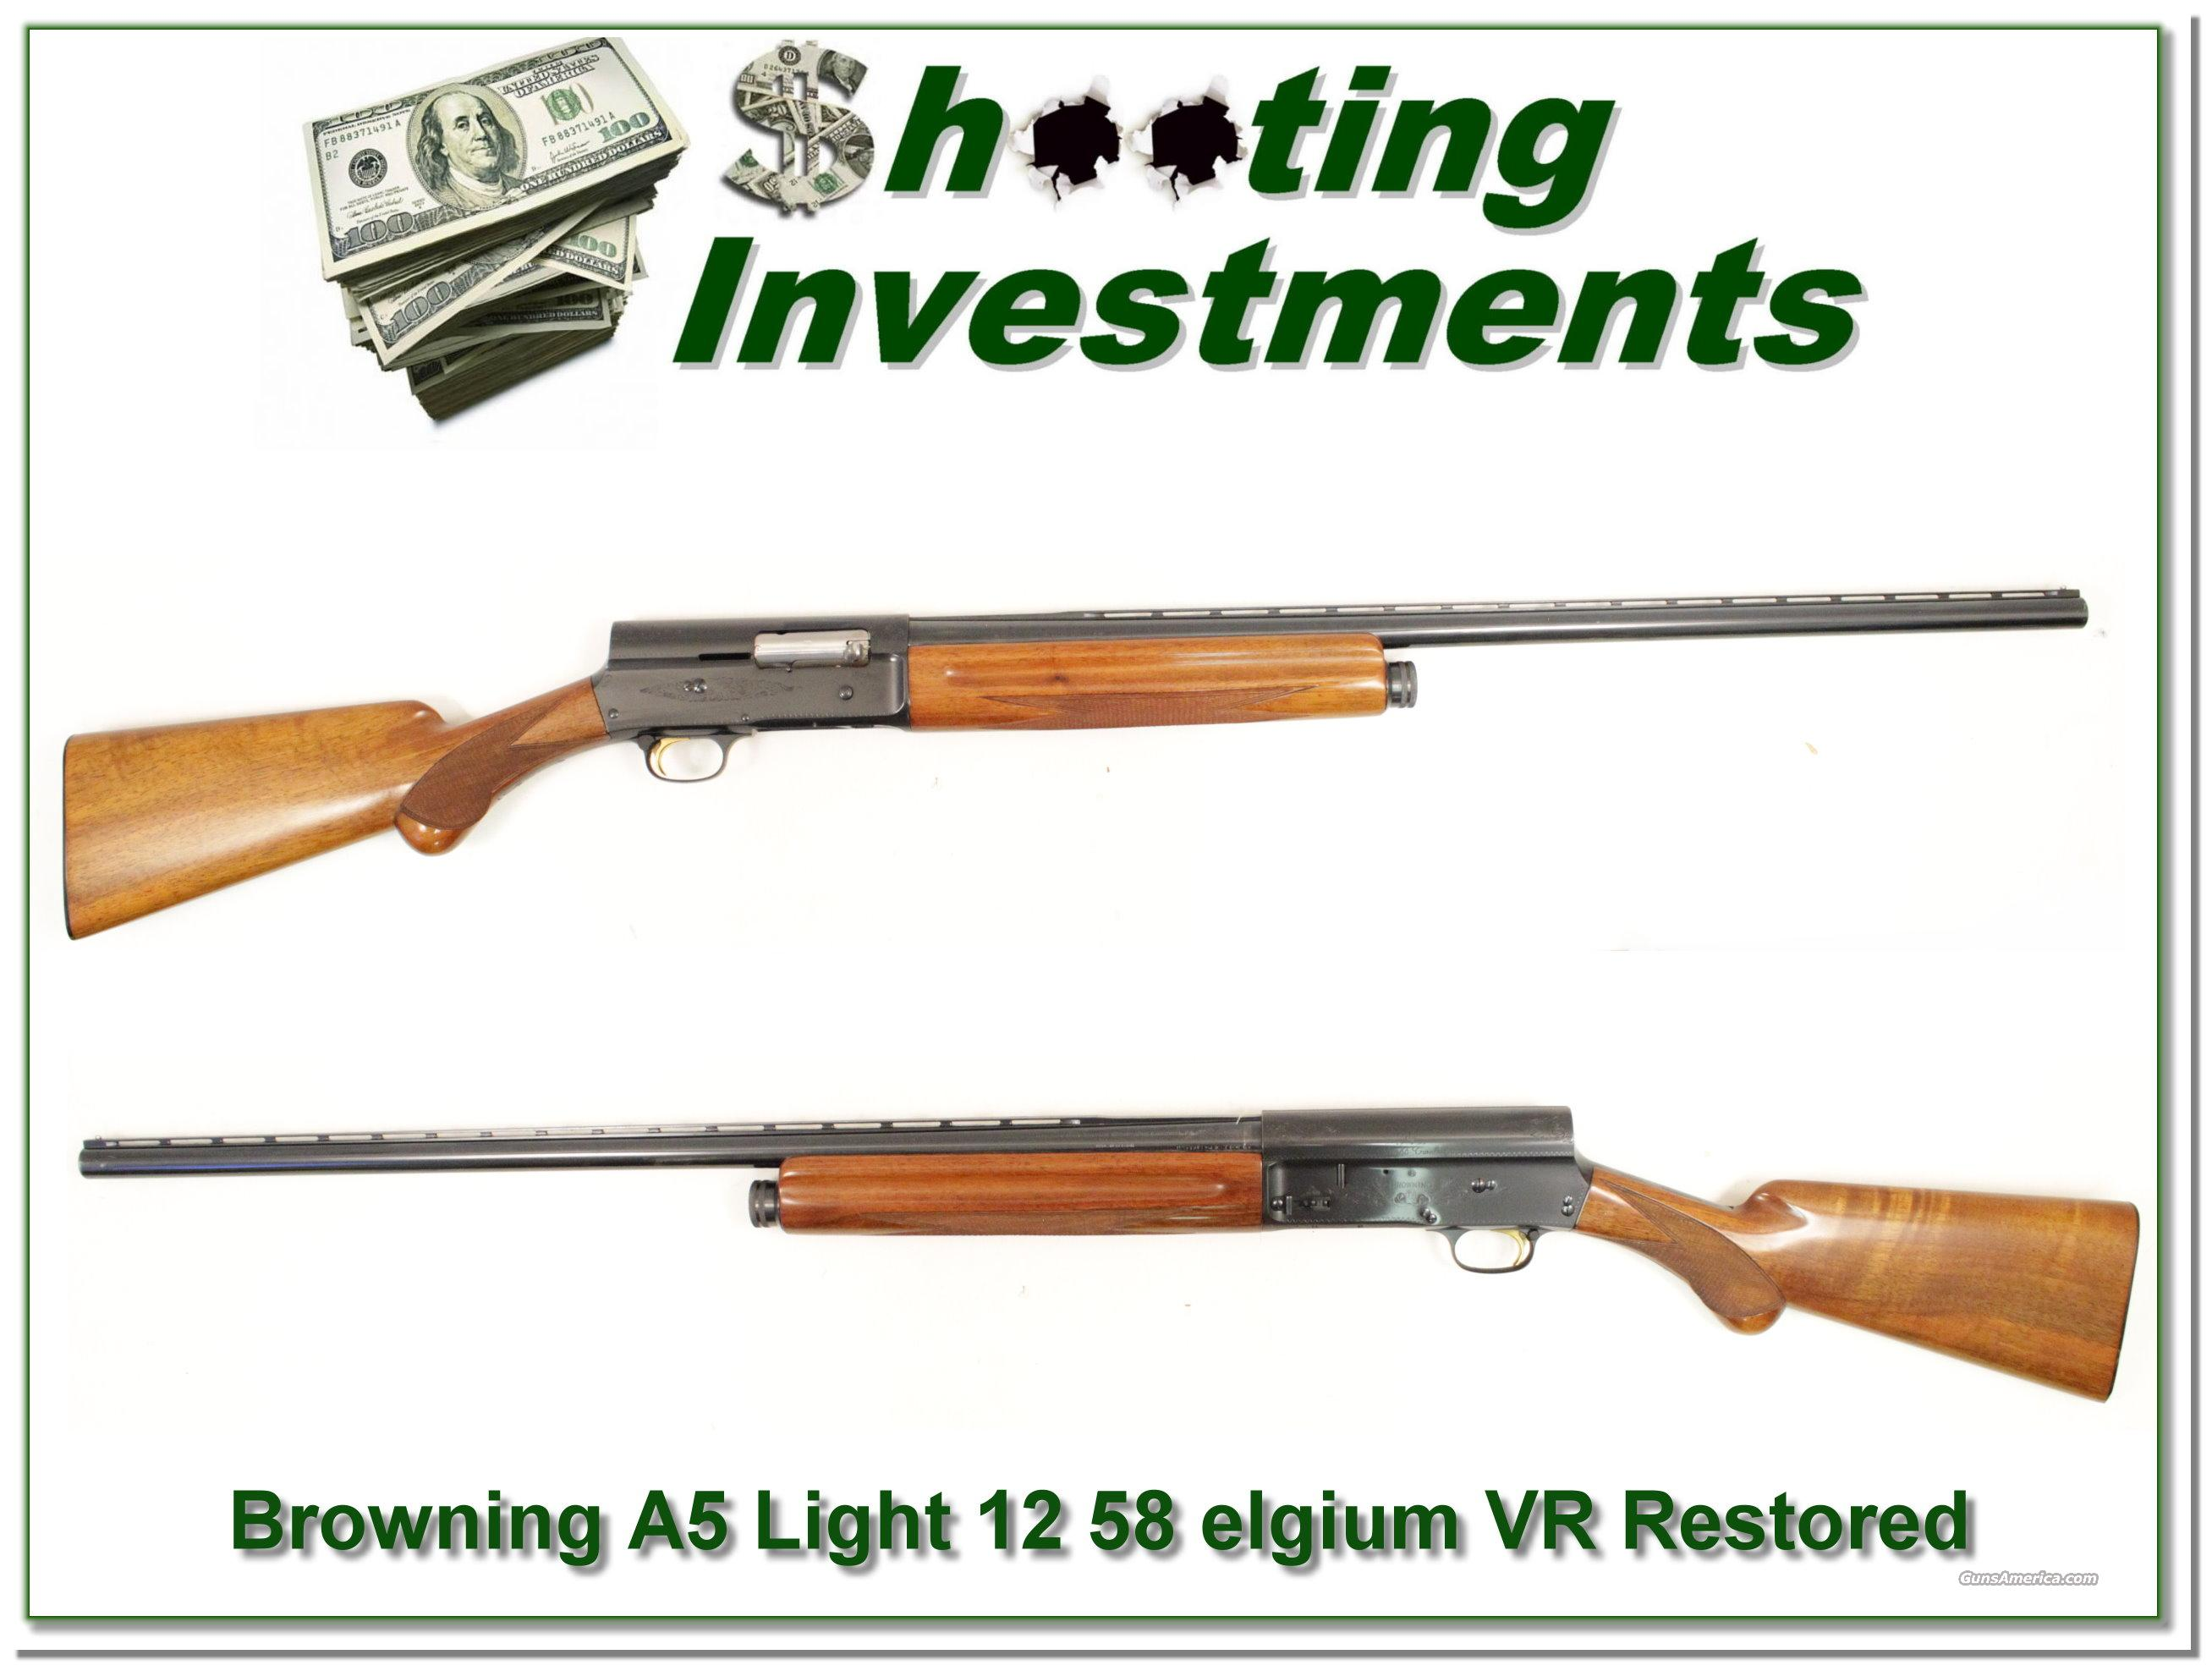 Browning A5 Light 12 58 Belgium 30in VR  Guns > Shotguns > Browning Shotguns > Autoloaders > Hunting